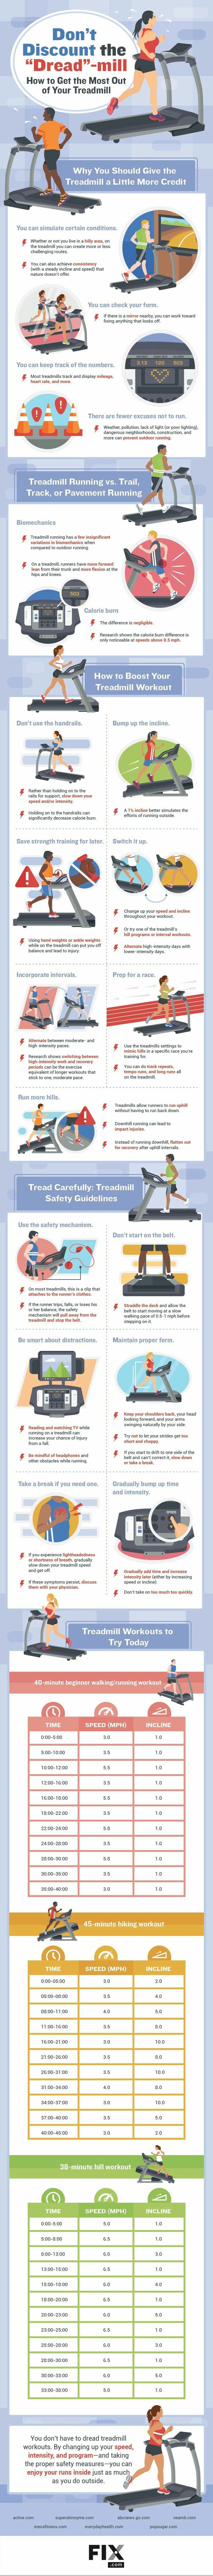 Tips for treadmill training for running workouts. Winter running instead of cold weather. Learn how you can get more out of your treadmill workouts with this complete guide to running on this amazing machine! Running tips for beginners. #running #runningtips